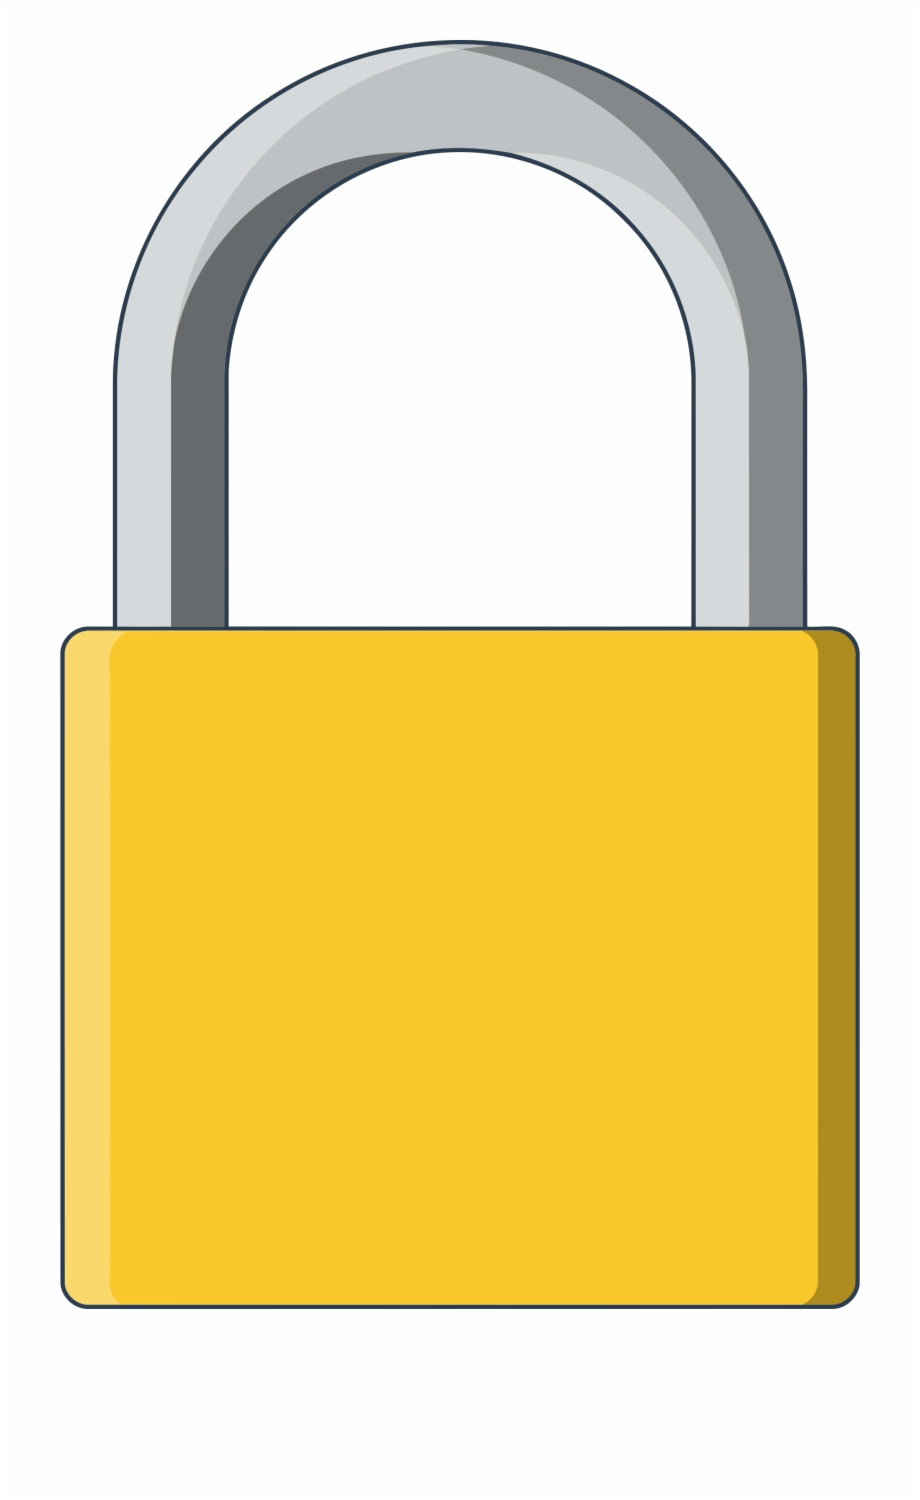 Png royalty free library. Key clipart key lock